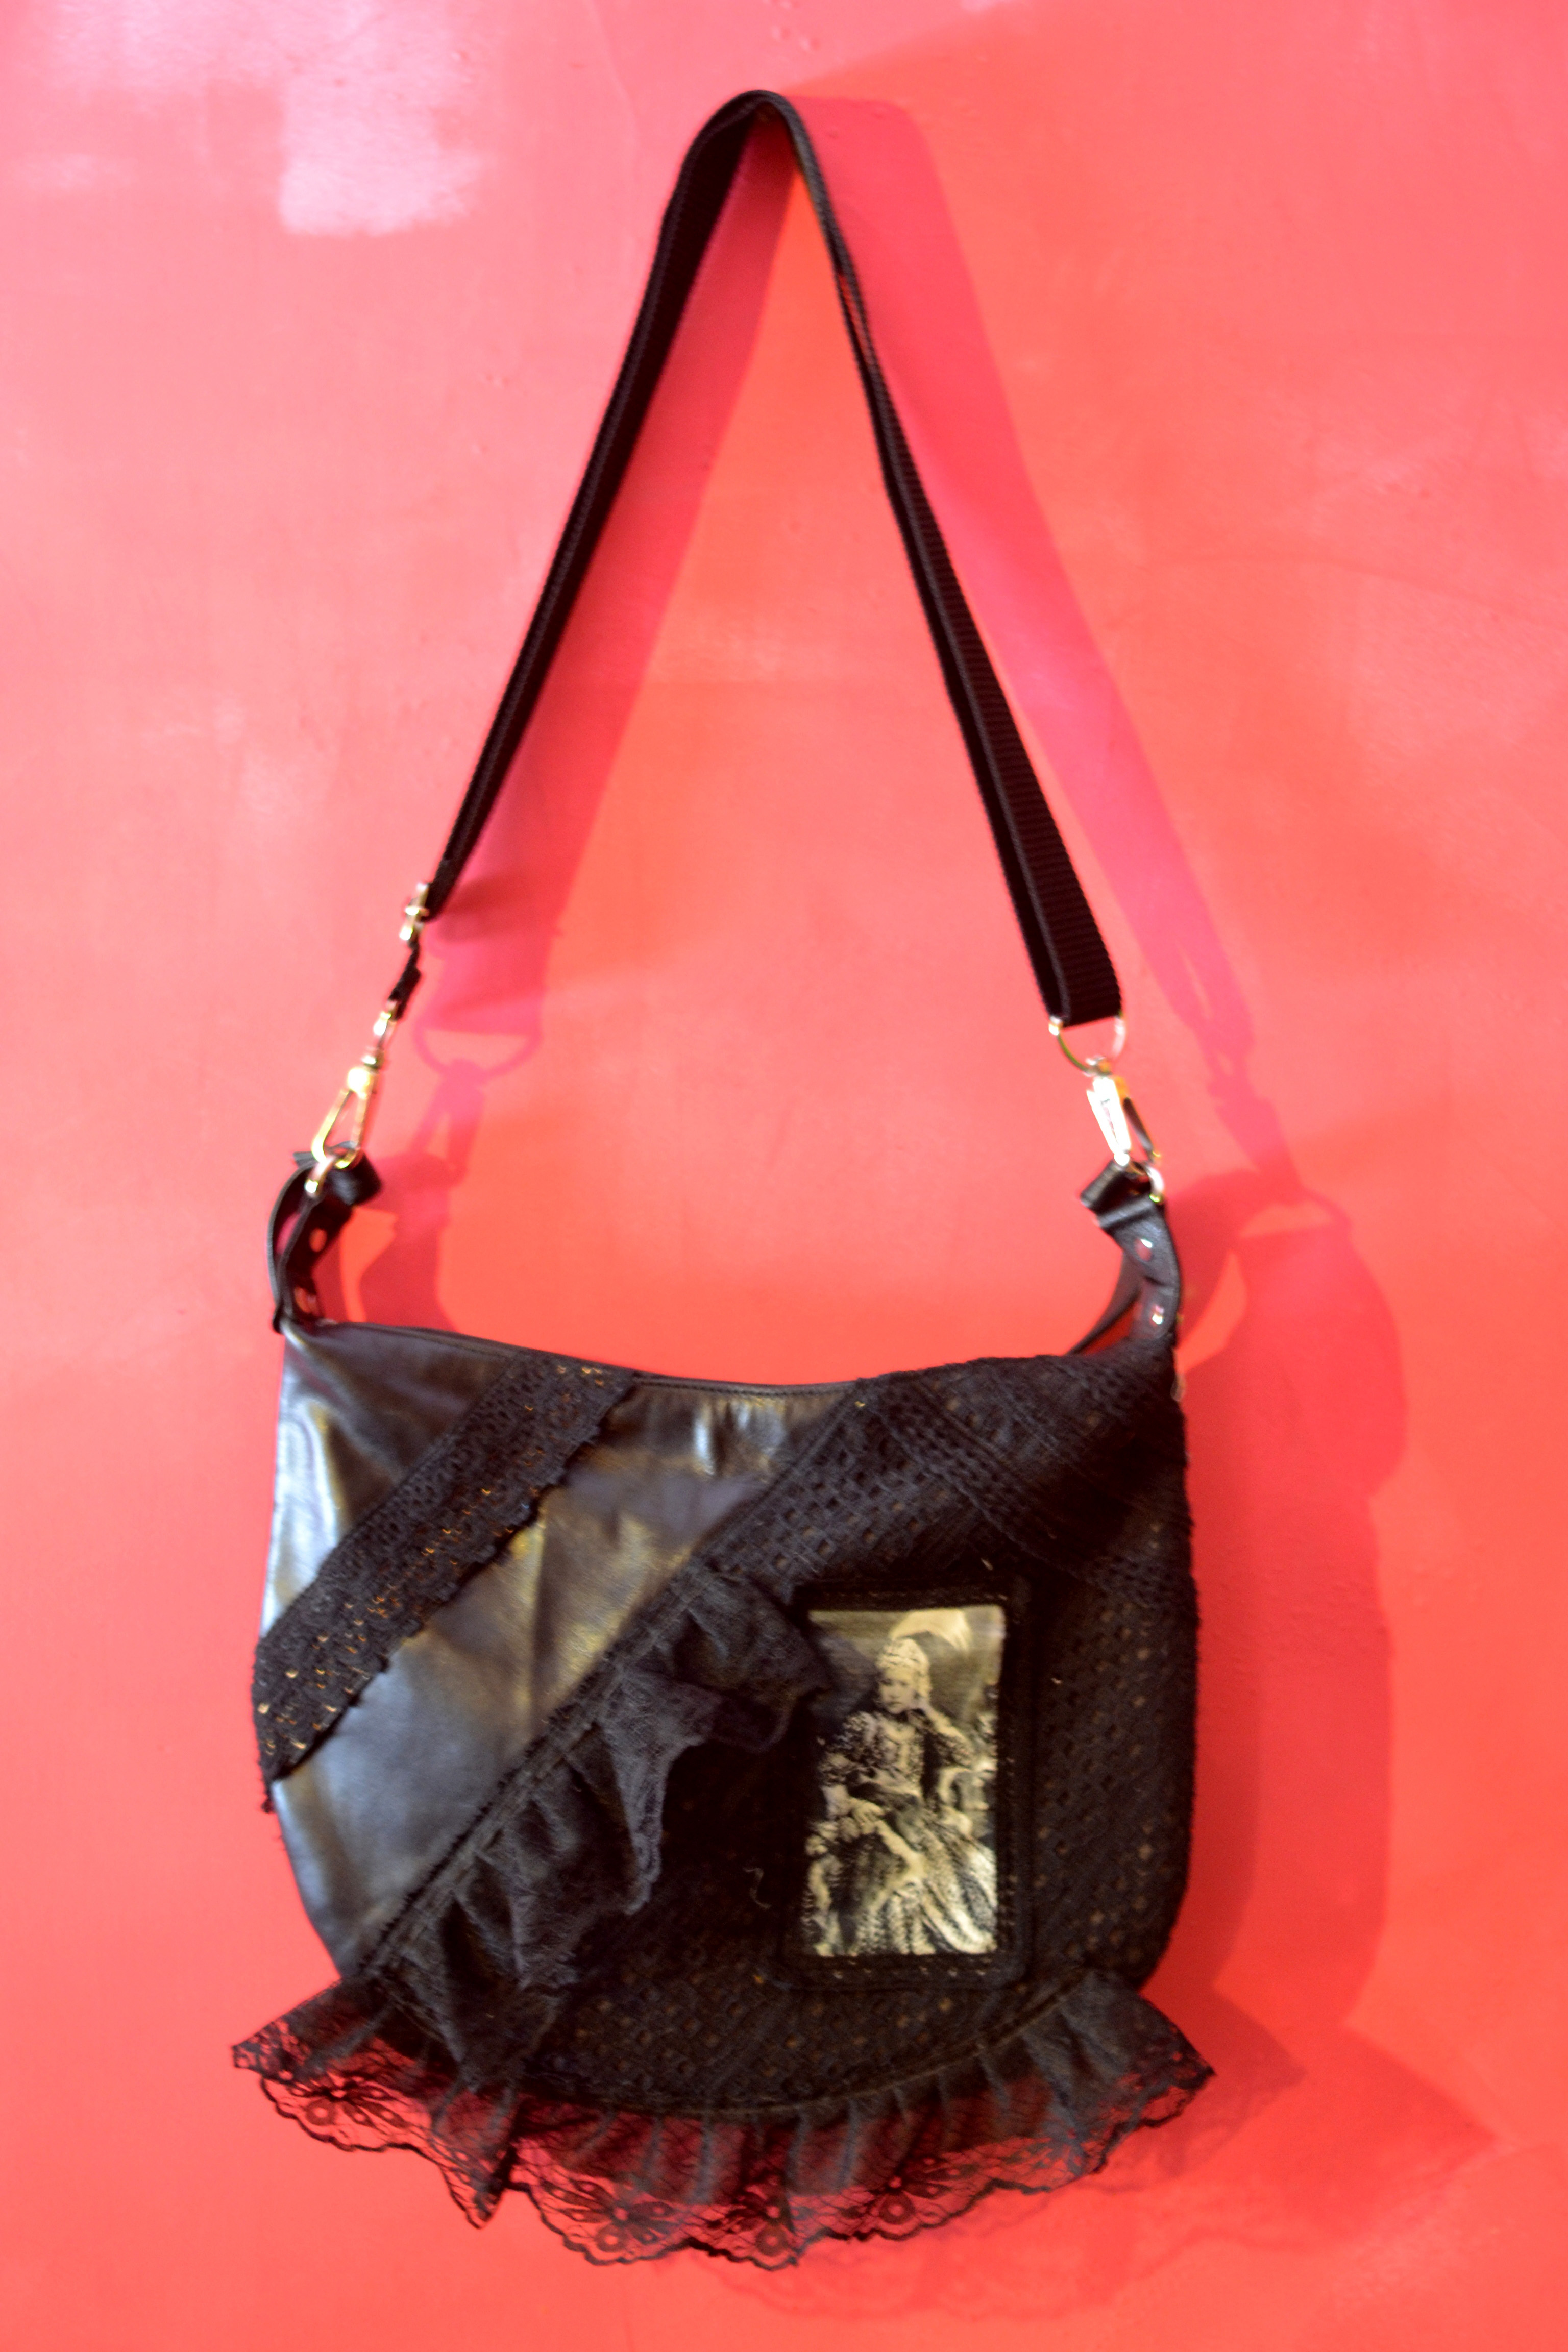 DL 620 moon bag